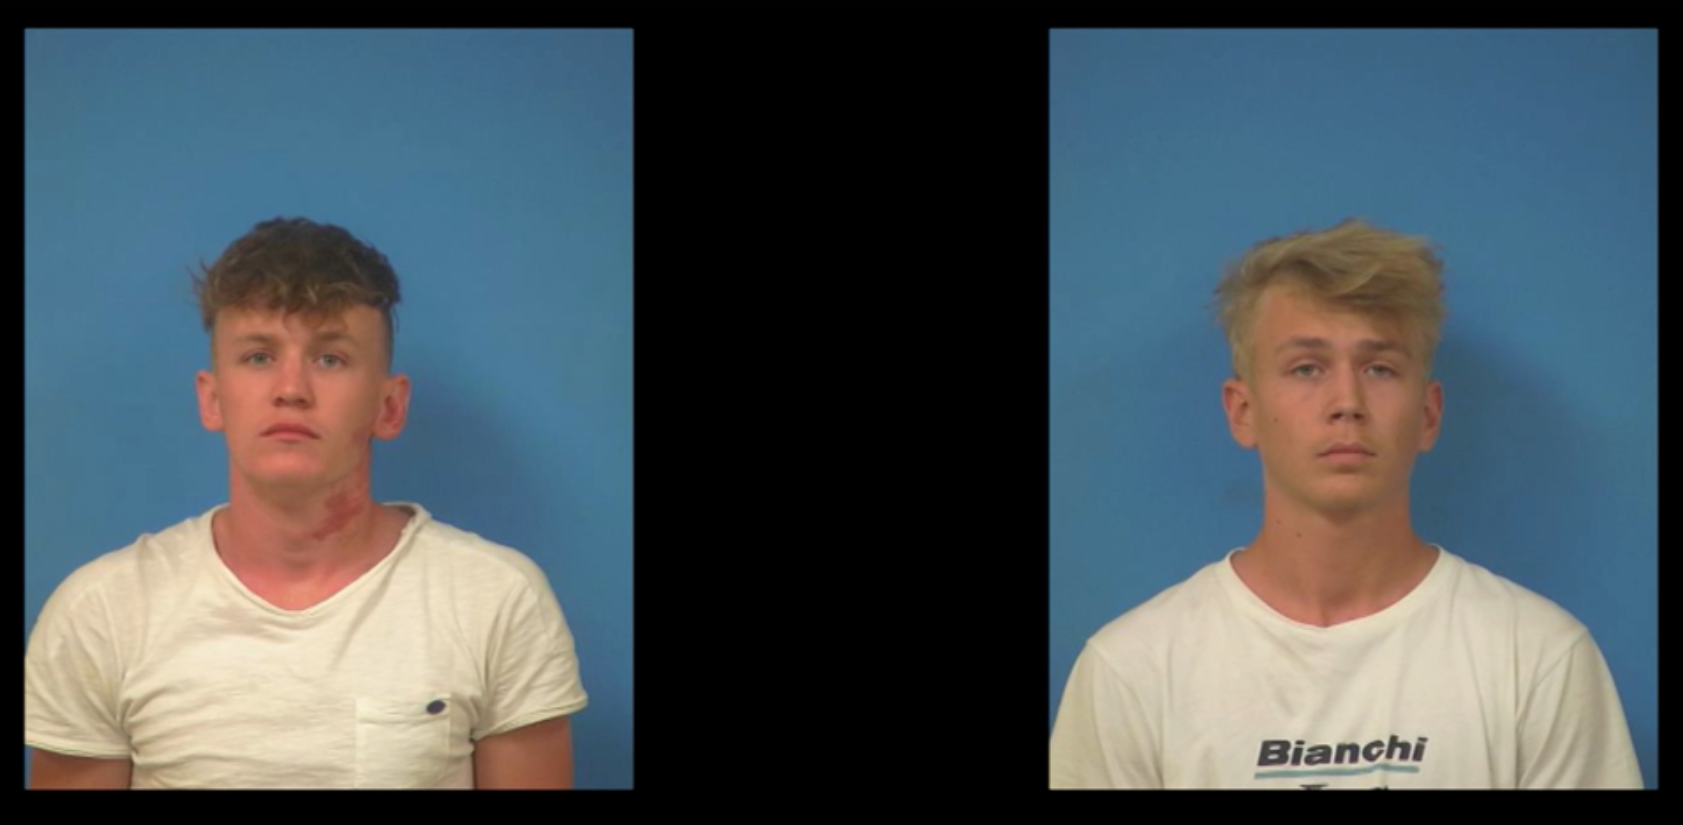 Govert Charles Wilhelmus Jacob Sweep, 21, (pictured left) and Tiers Granzier, 20 (pictured right); both of the Netherlands.  (Nye County Sheriff's Department)